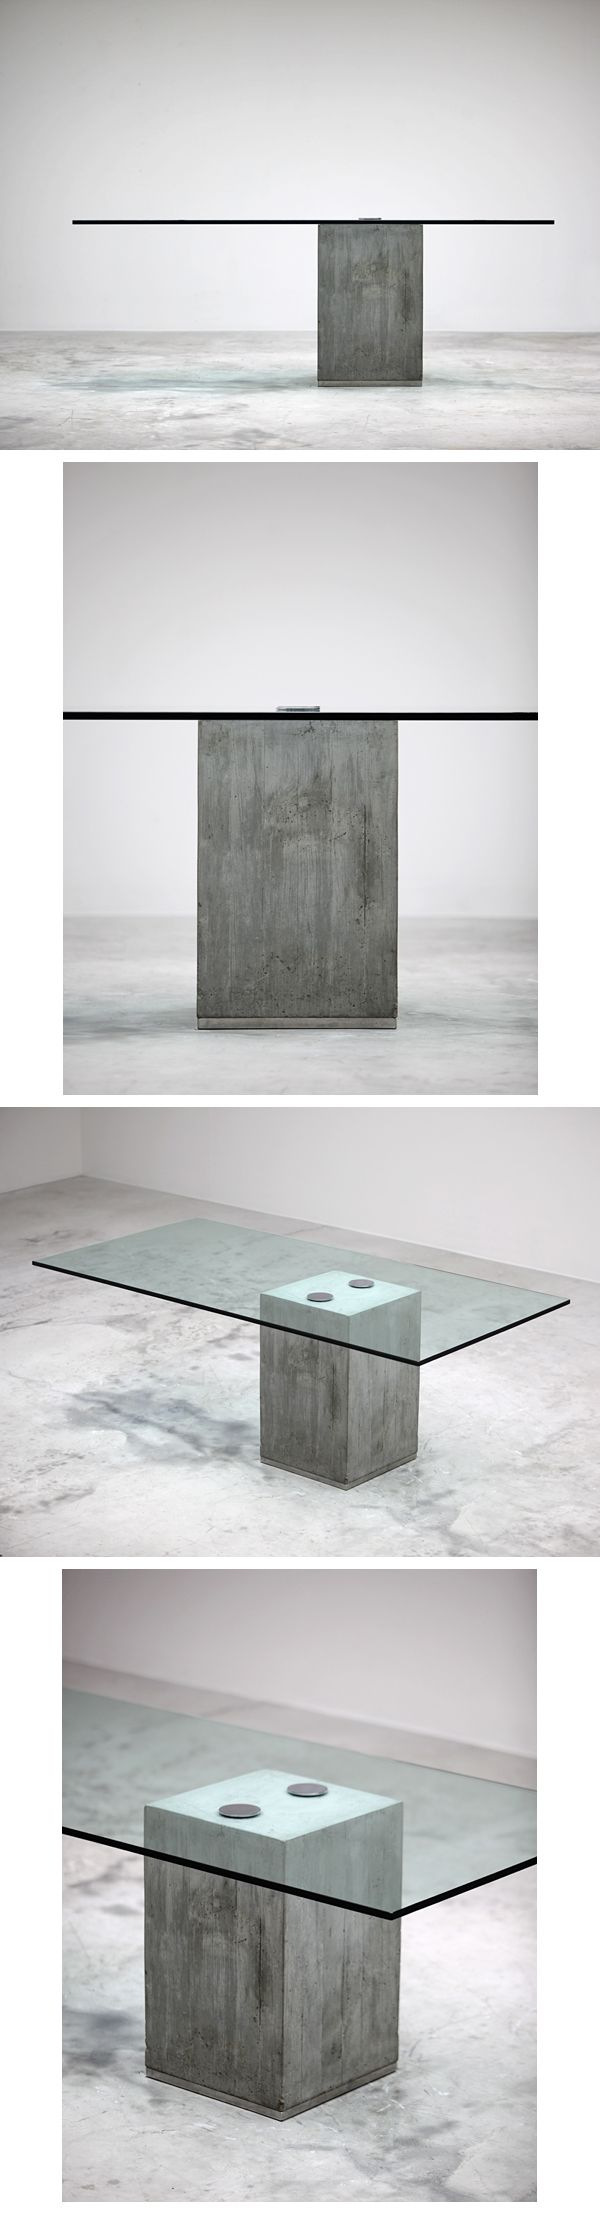 SERGIO AND GIORGIO SAPORITI dining table.     Italy, c. 1970-80  cast concrete, glass, chrome-plated steel, stainless steel  78.25 w x 39.25 d x 28.75 h inches